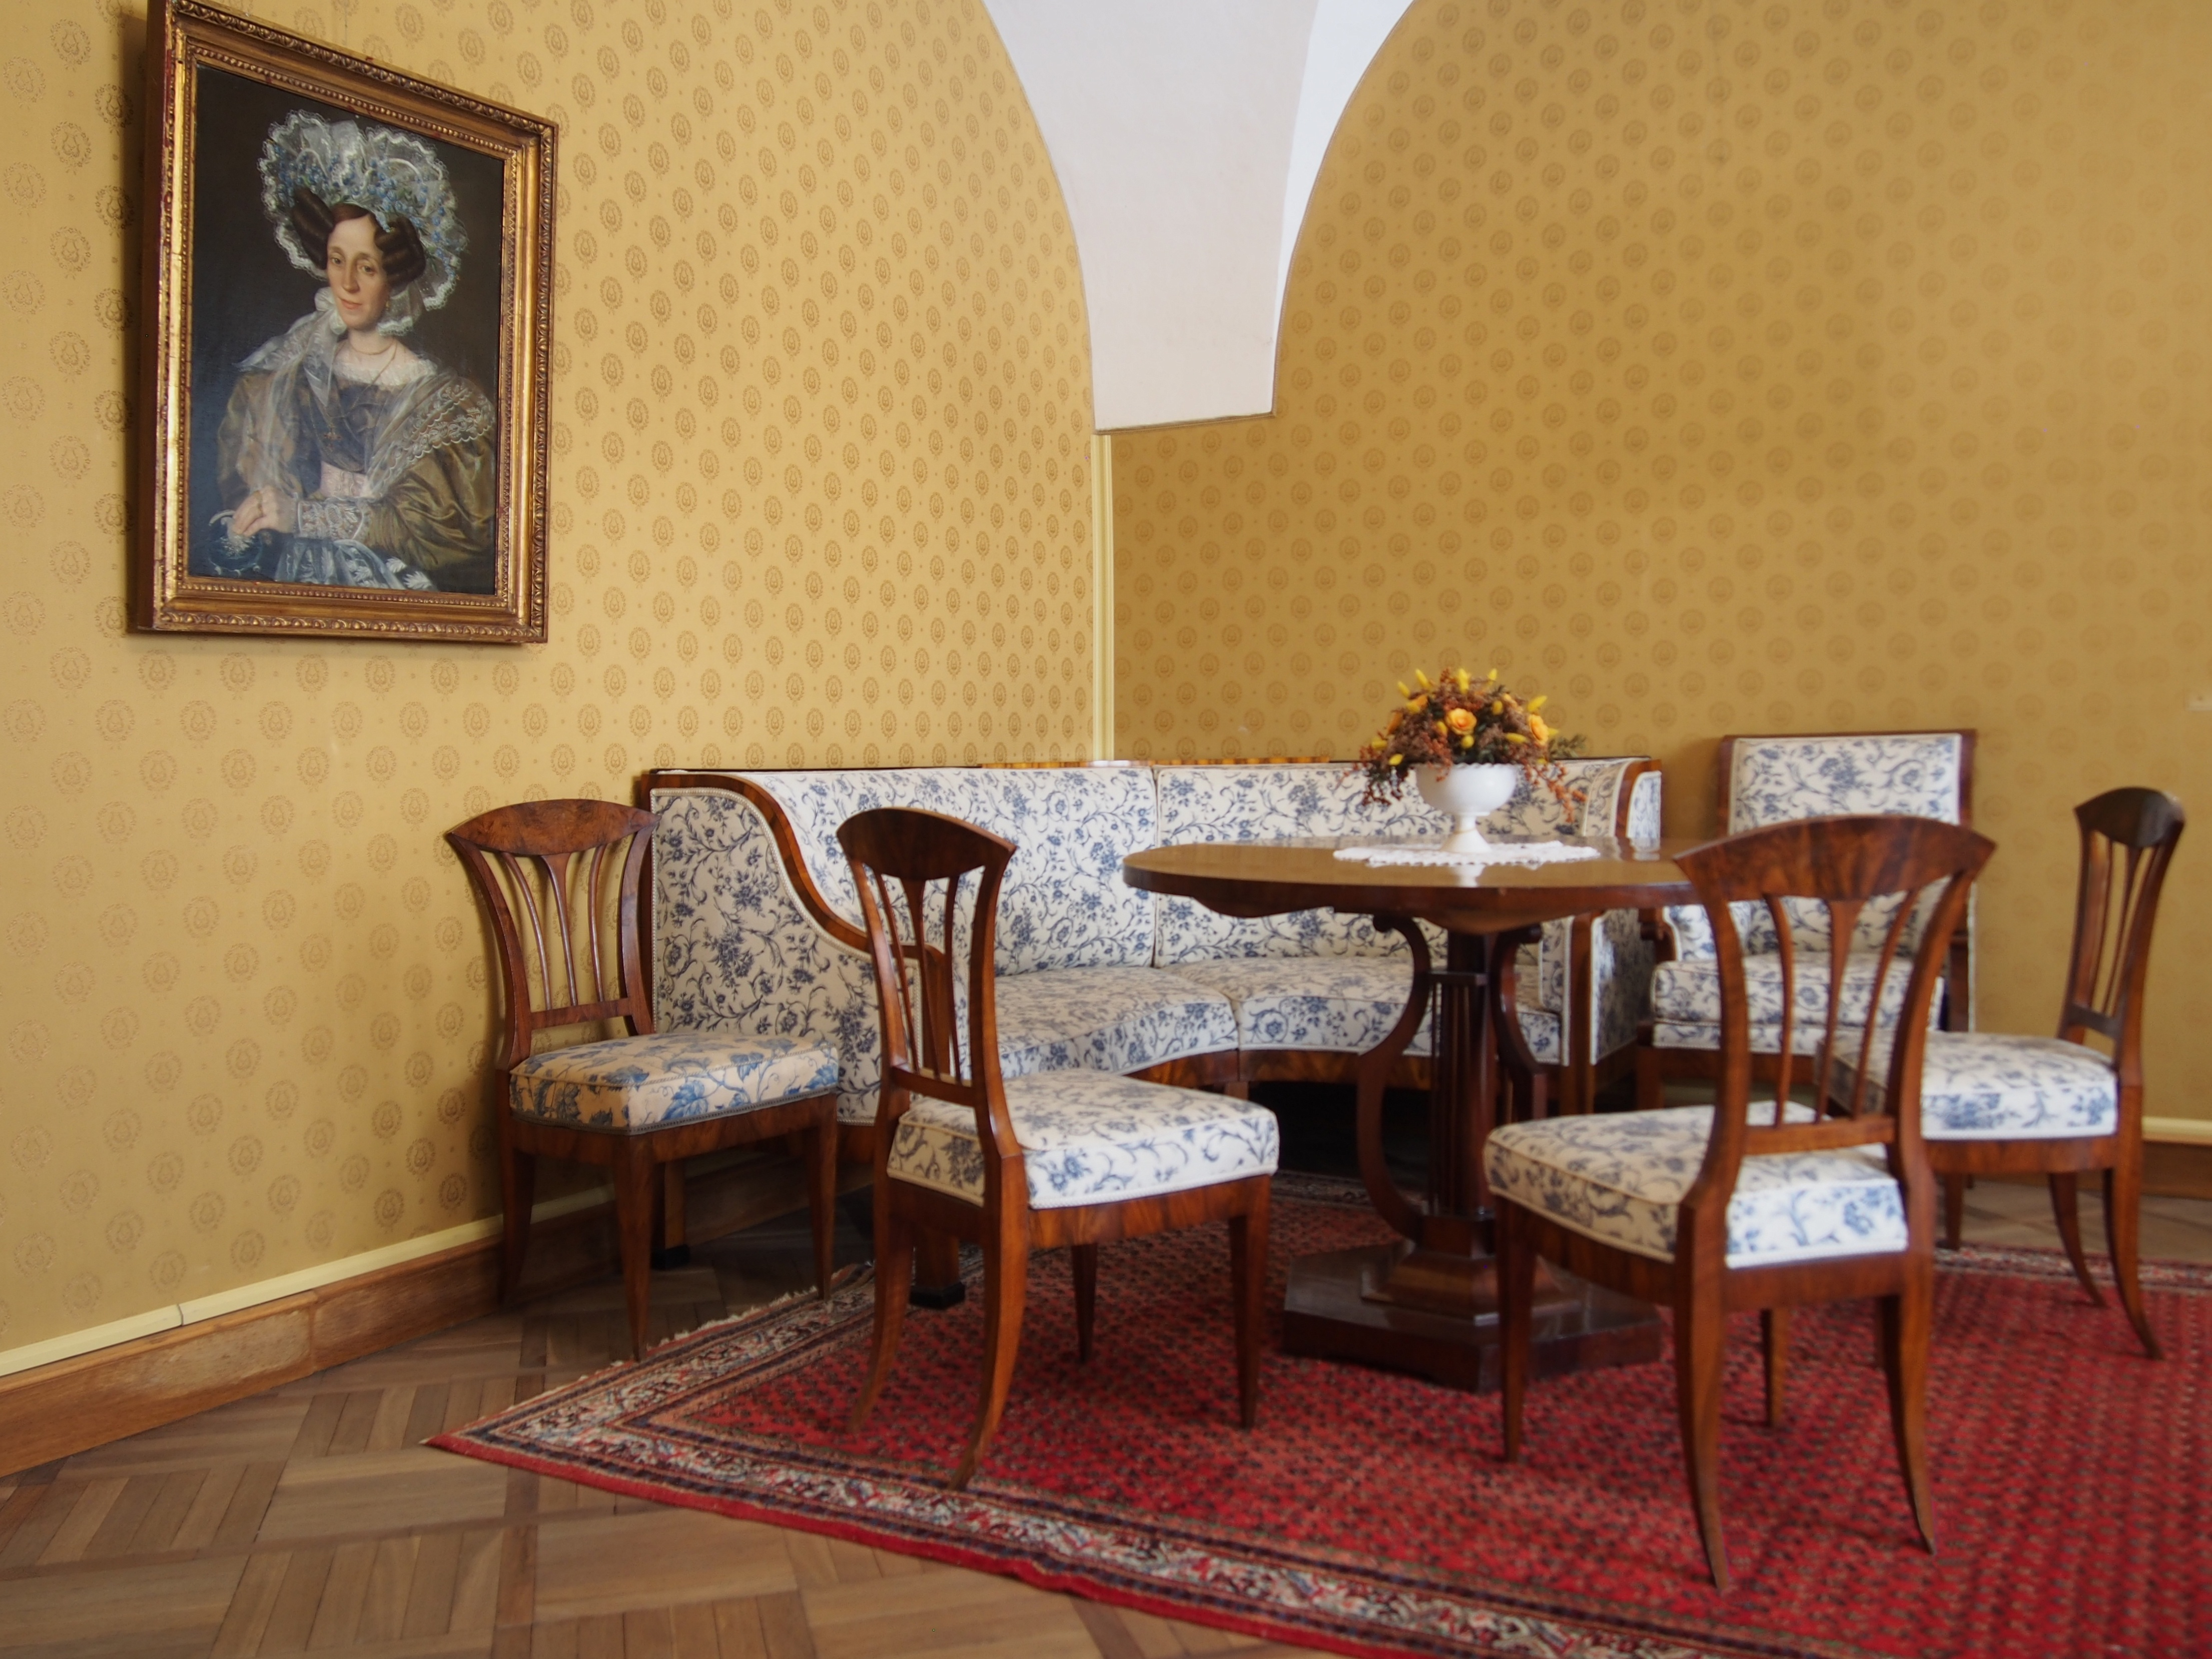 WALLPAPERS & UPHOLSTERY